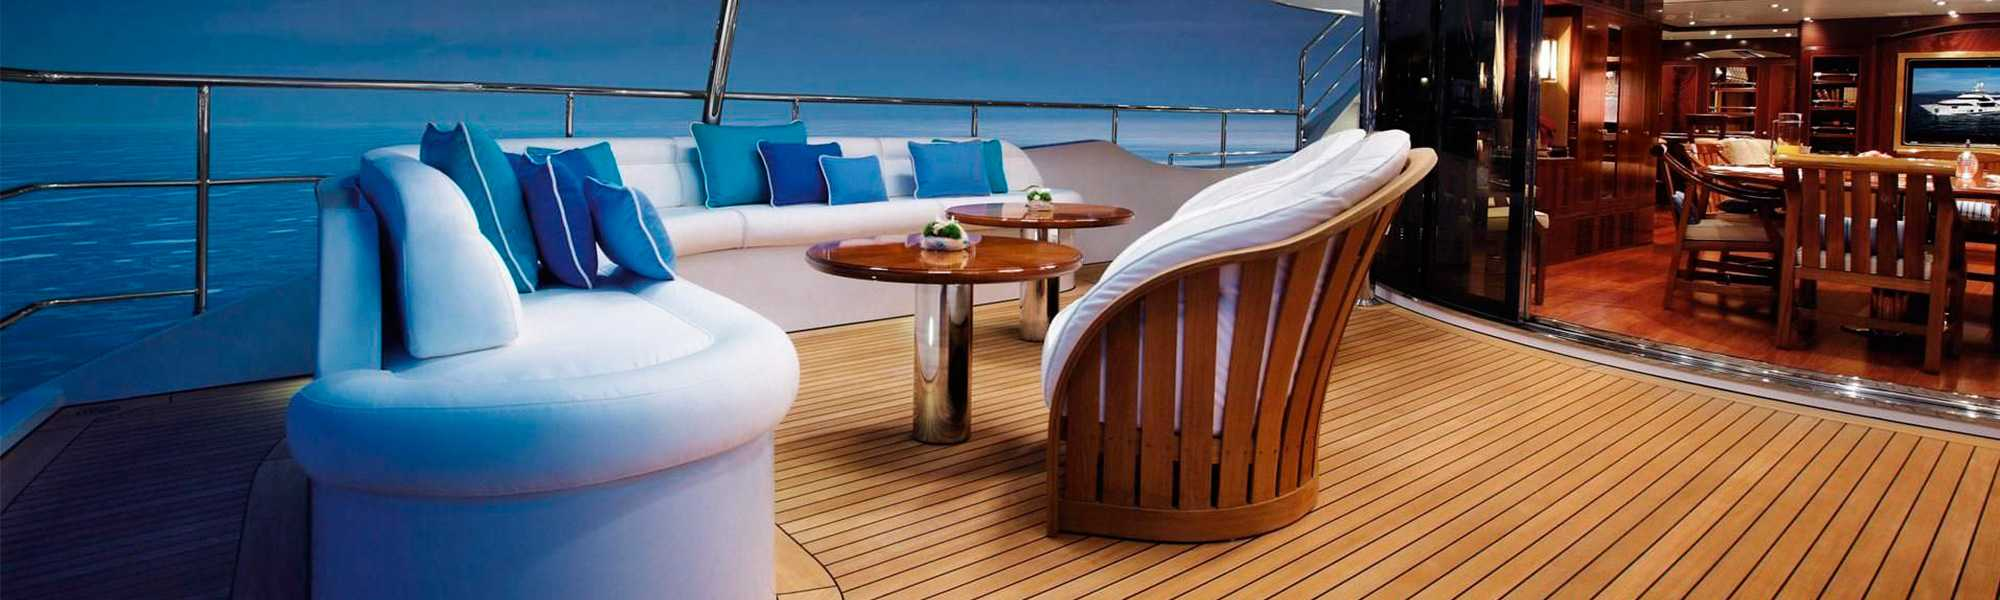 Synthetic Teak Boat Deck suppliers